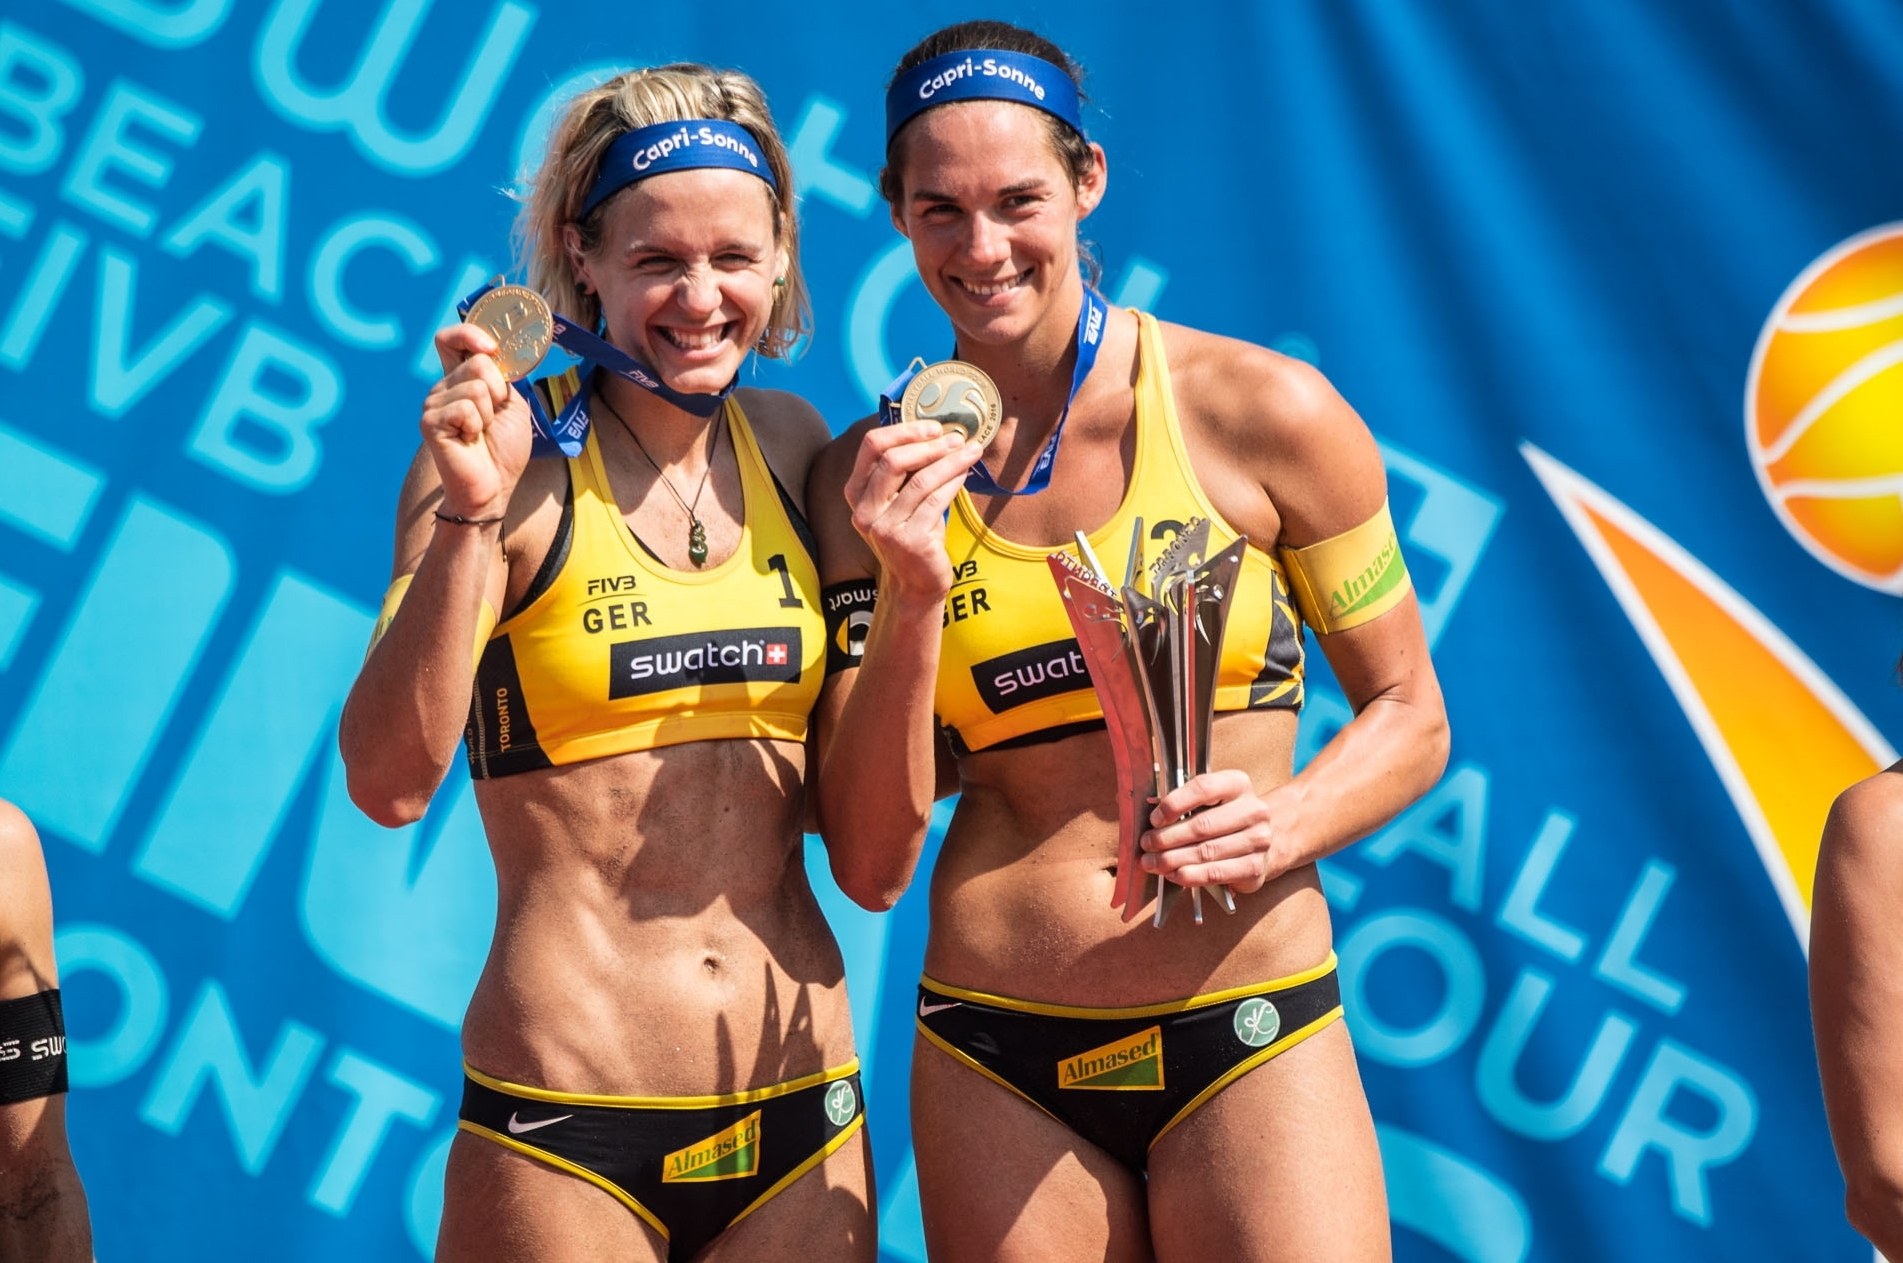 Germany's golden girls Laura Ludwig (left) and Kira Walkenhorst. Photocredit: Joerg Mitter.